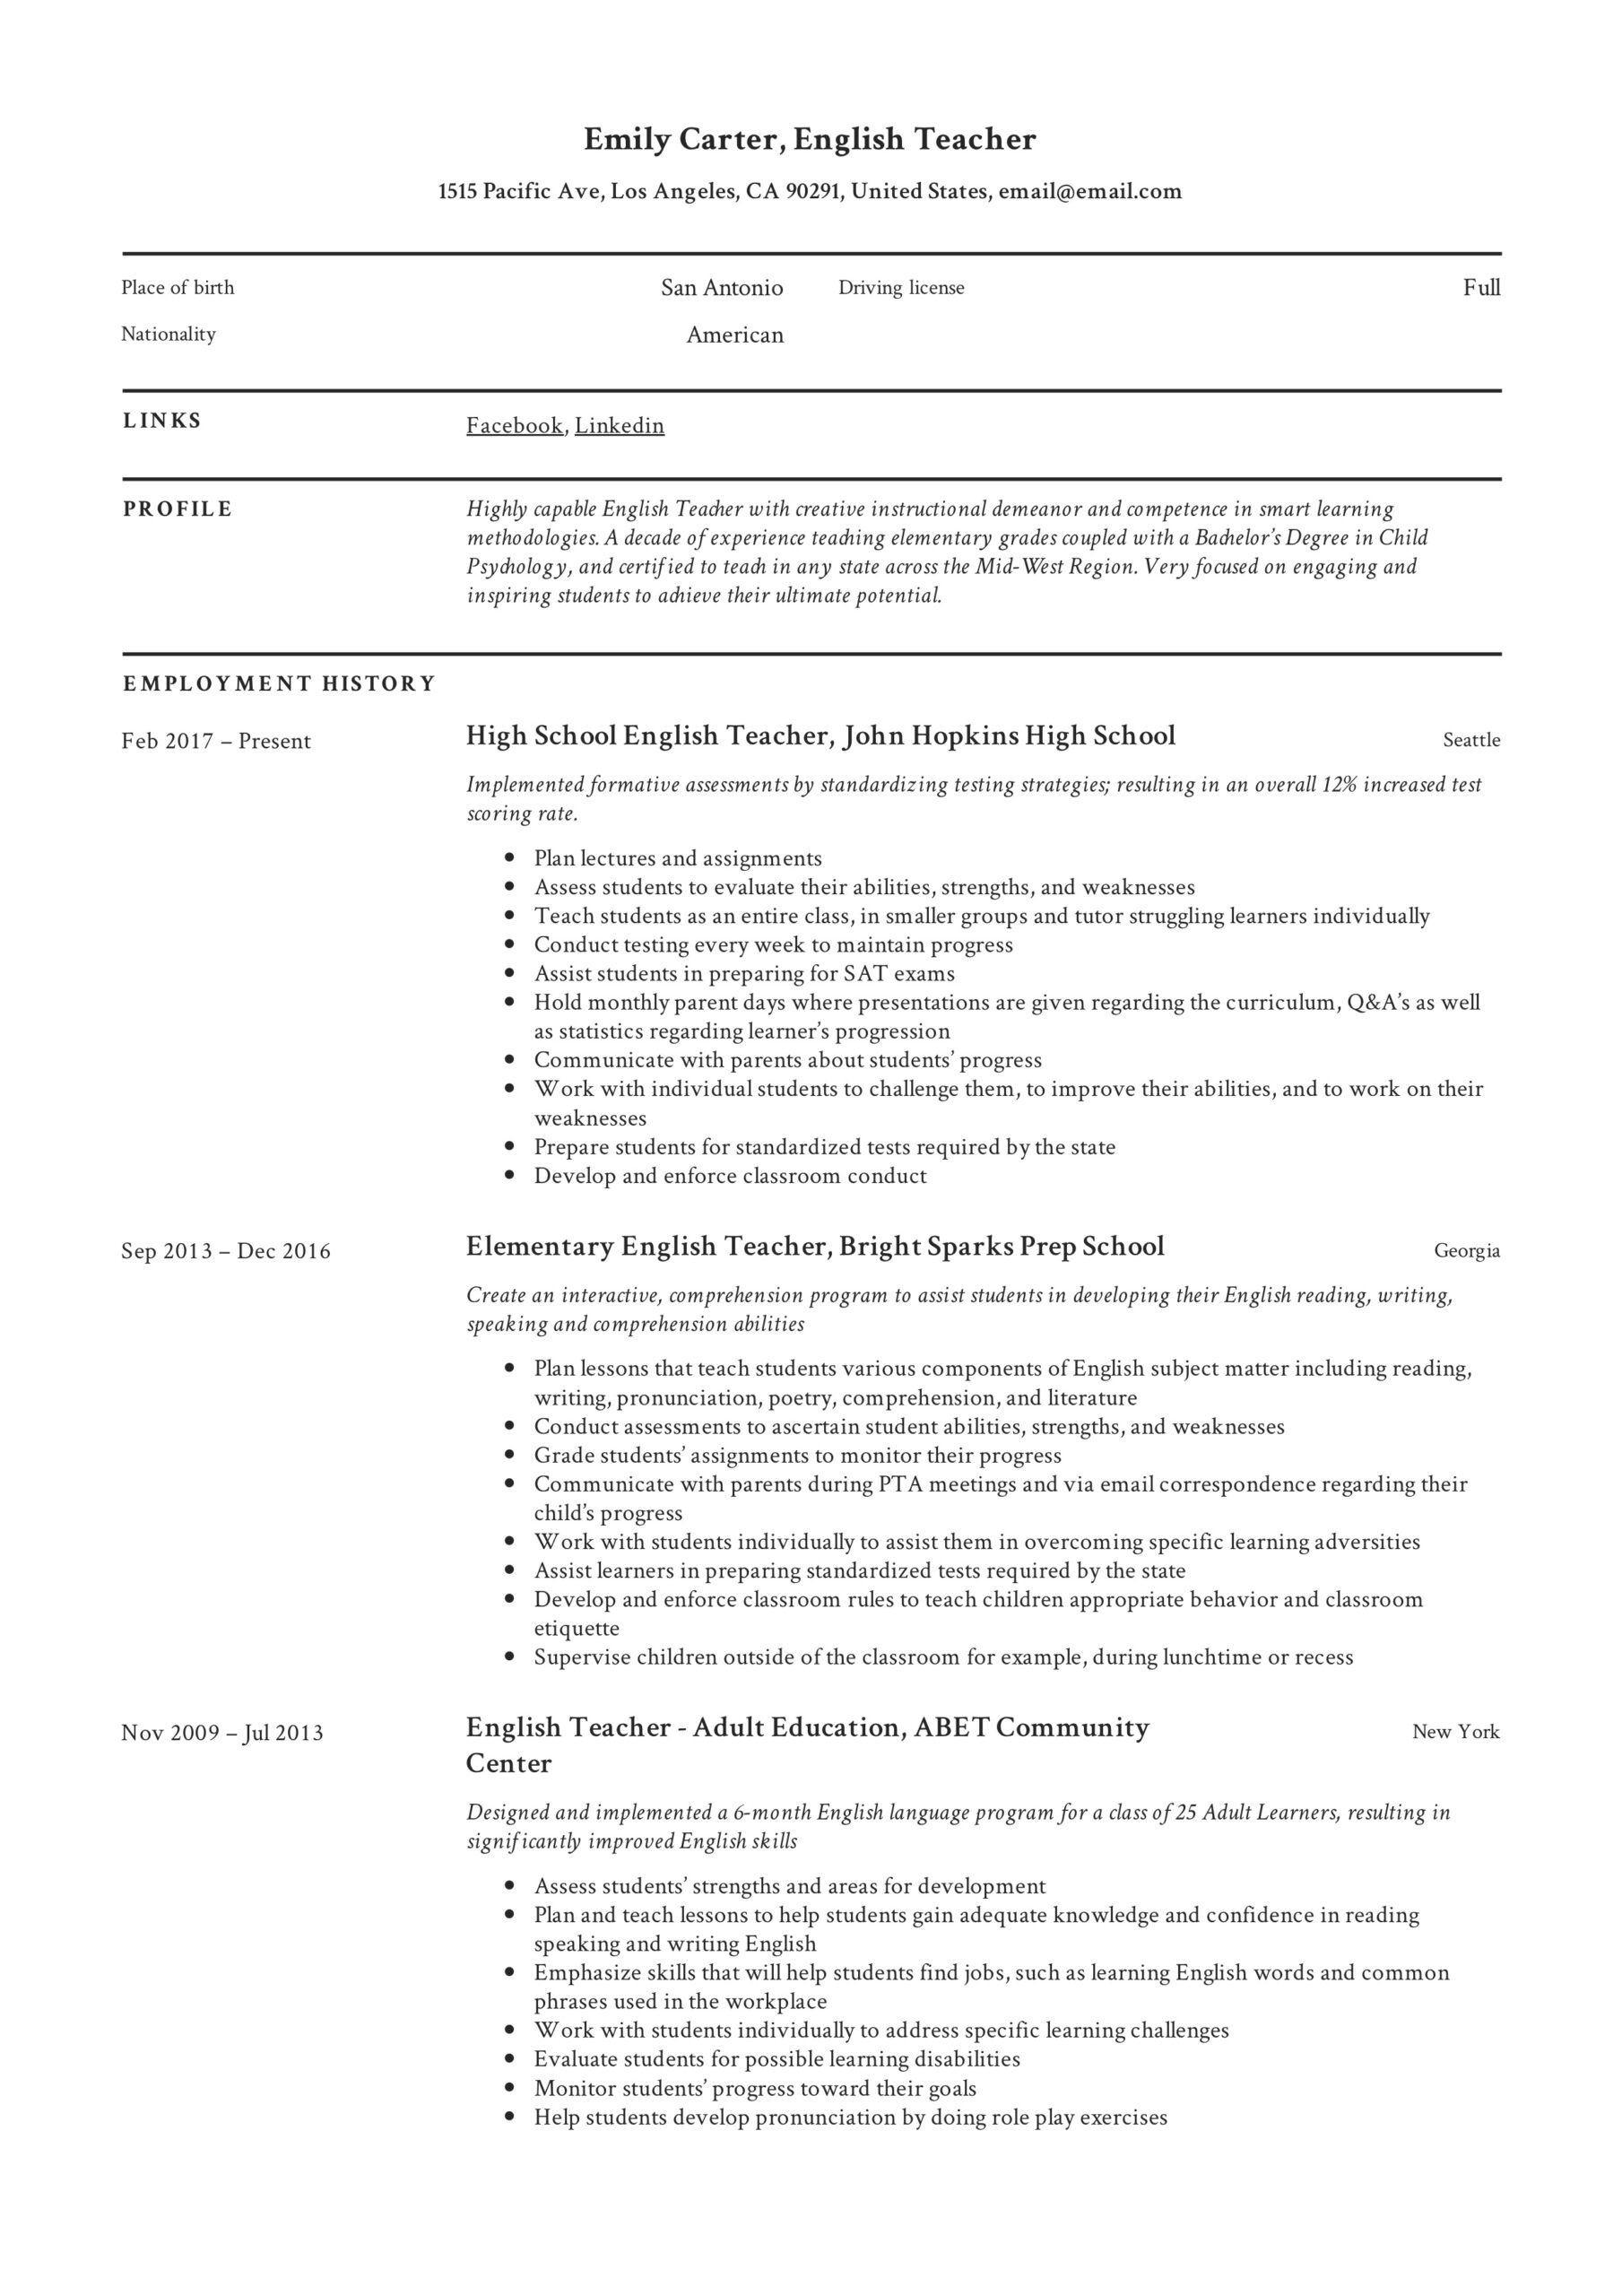 resume templates pdf word free downloads and guides best format for experienced Resume Best Resume Format For Experienced Free Download